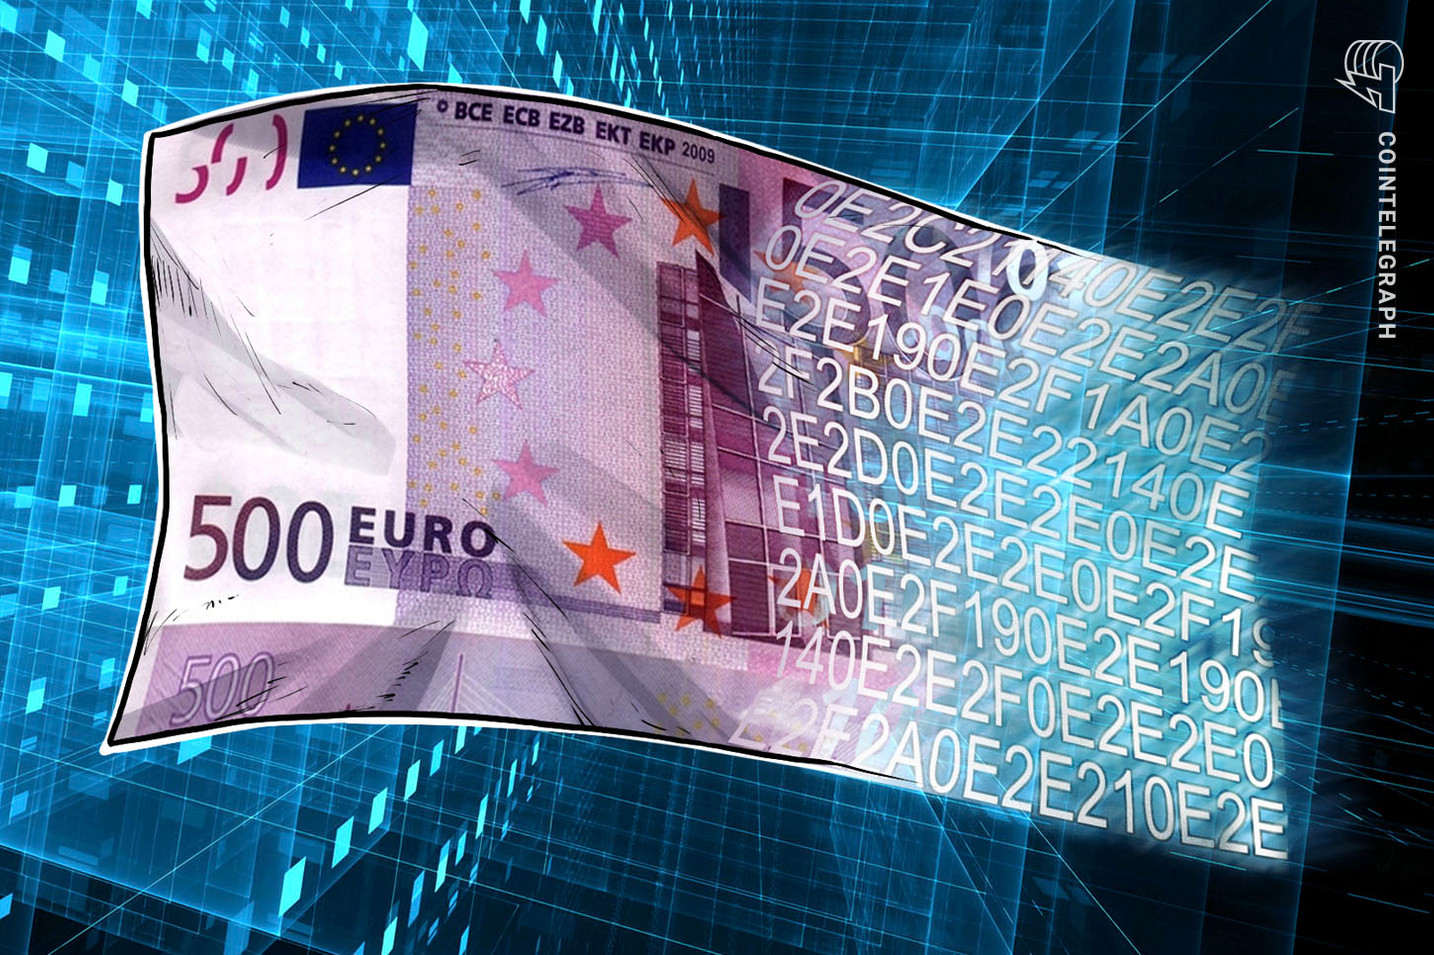 Italian Banking Association launches experimental digital euro project